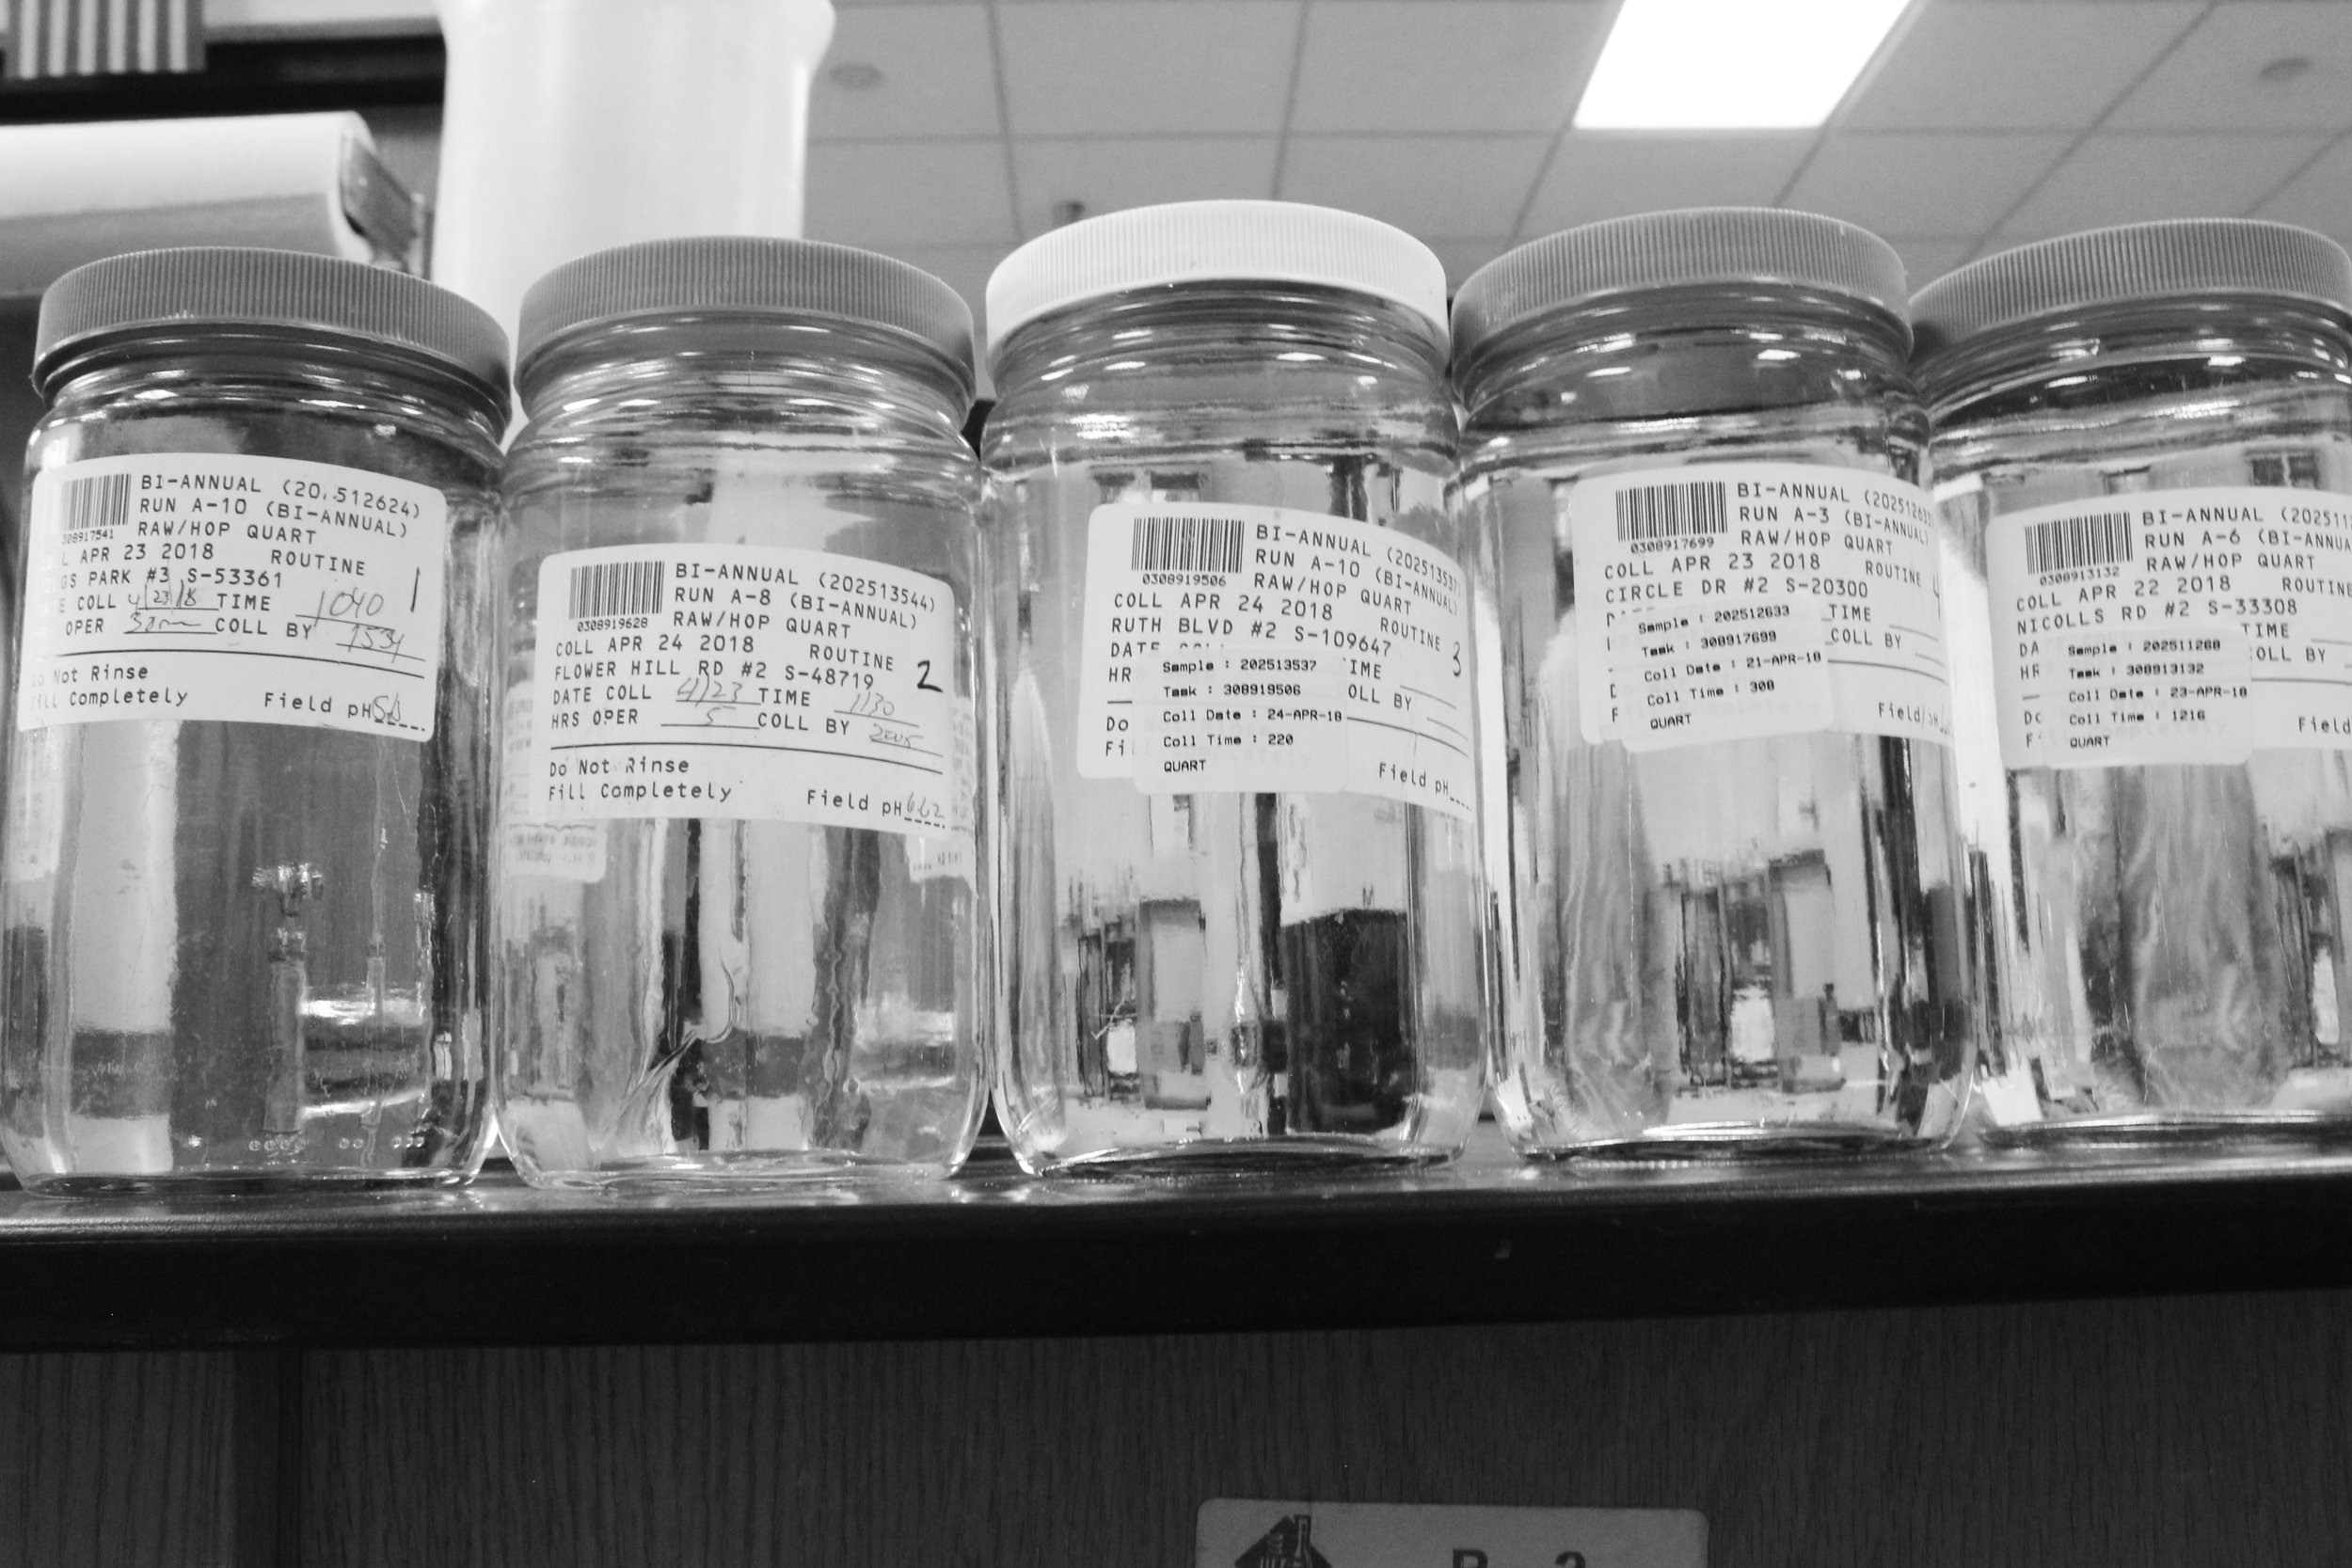 LONG ISLAND WATER SAMPLES FROM SUFFOLK COUNTY WATER AUTHORITY